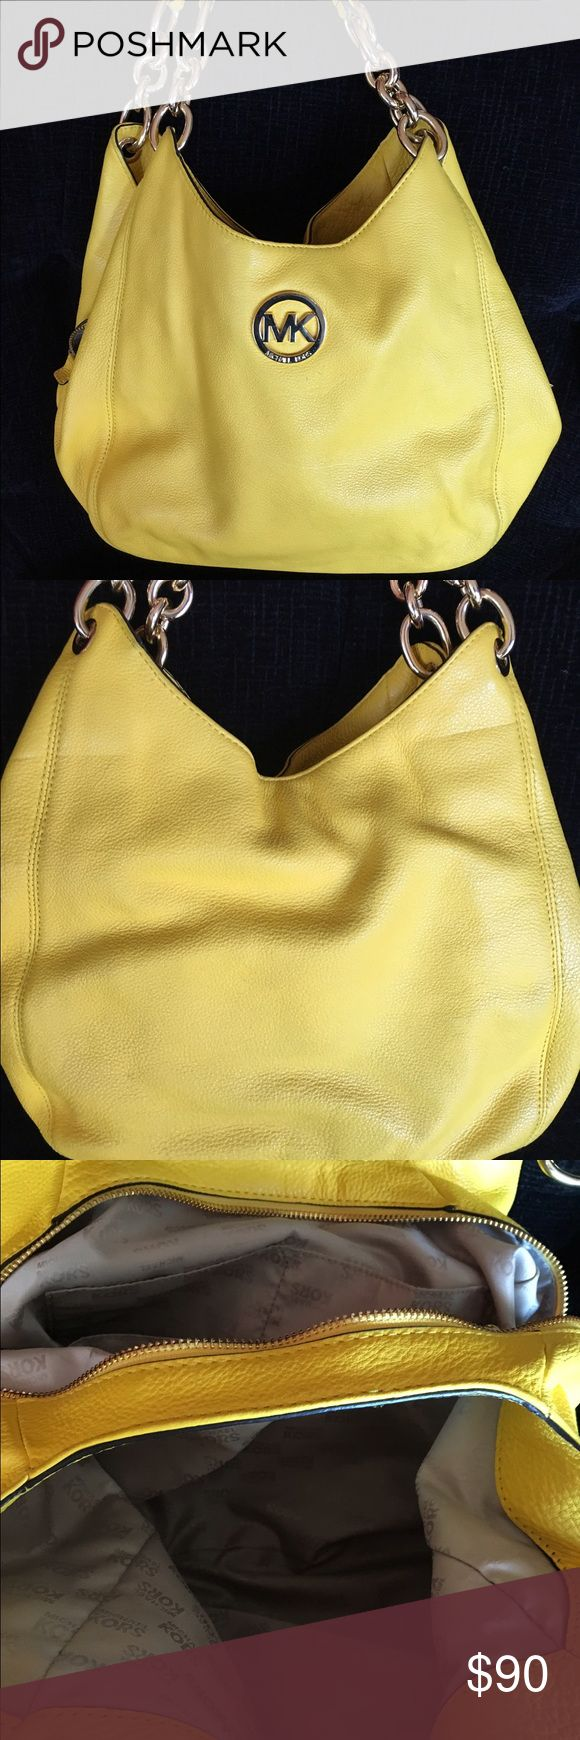 """Michael Kors 'Fulton' bag - Yellow! Bright yellow MK pebbles leather bag. In very good used condition! Gold hardware and in side in excellent condition. Outside has a few very faint smudges but hardly noticeable. 12""""w x 13""""h x 4""""deep. Handle has 9"""" drop. Inside has 3 sections with lots of pockets ! Price reflects the outside condition. Michael Kors Bags"""